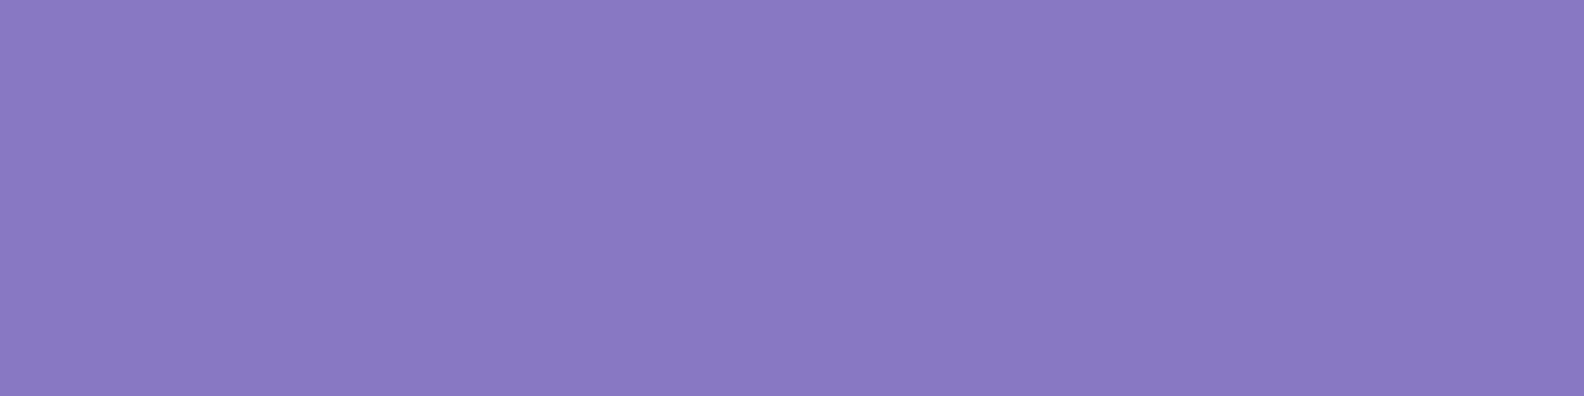 1584x396 Ube Solid Color Background